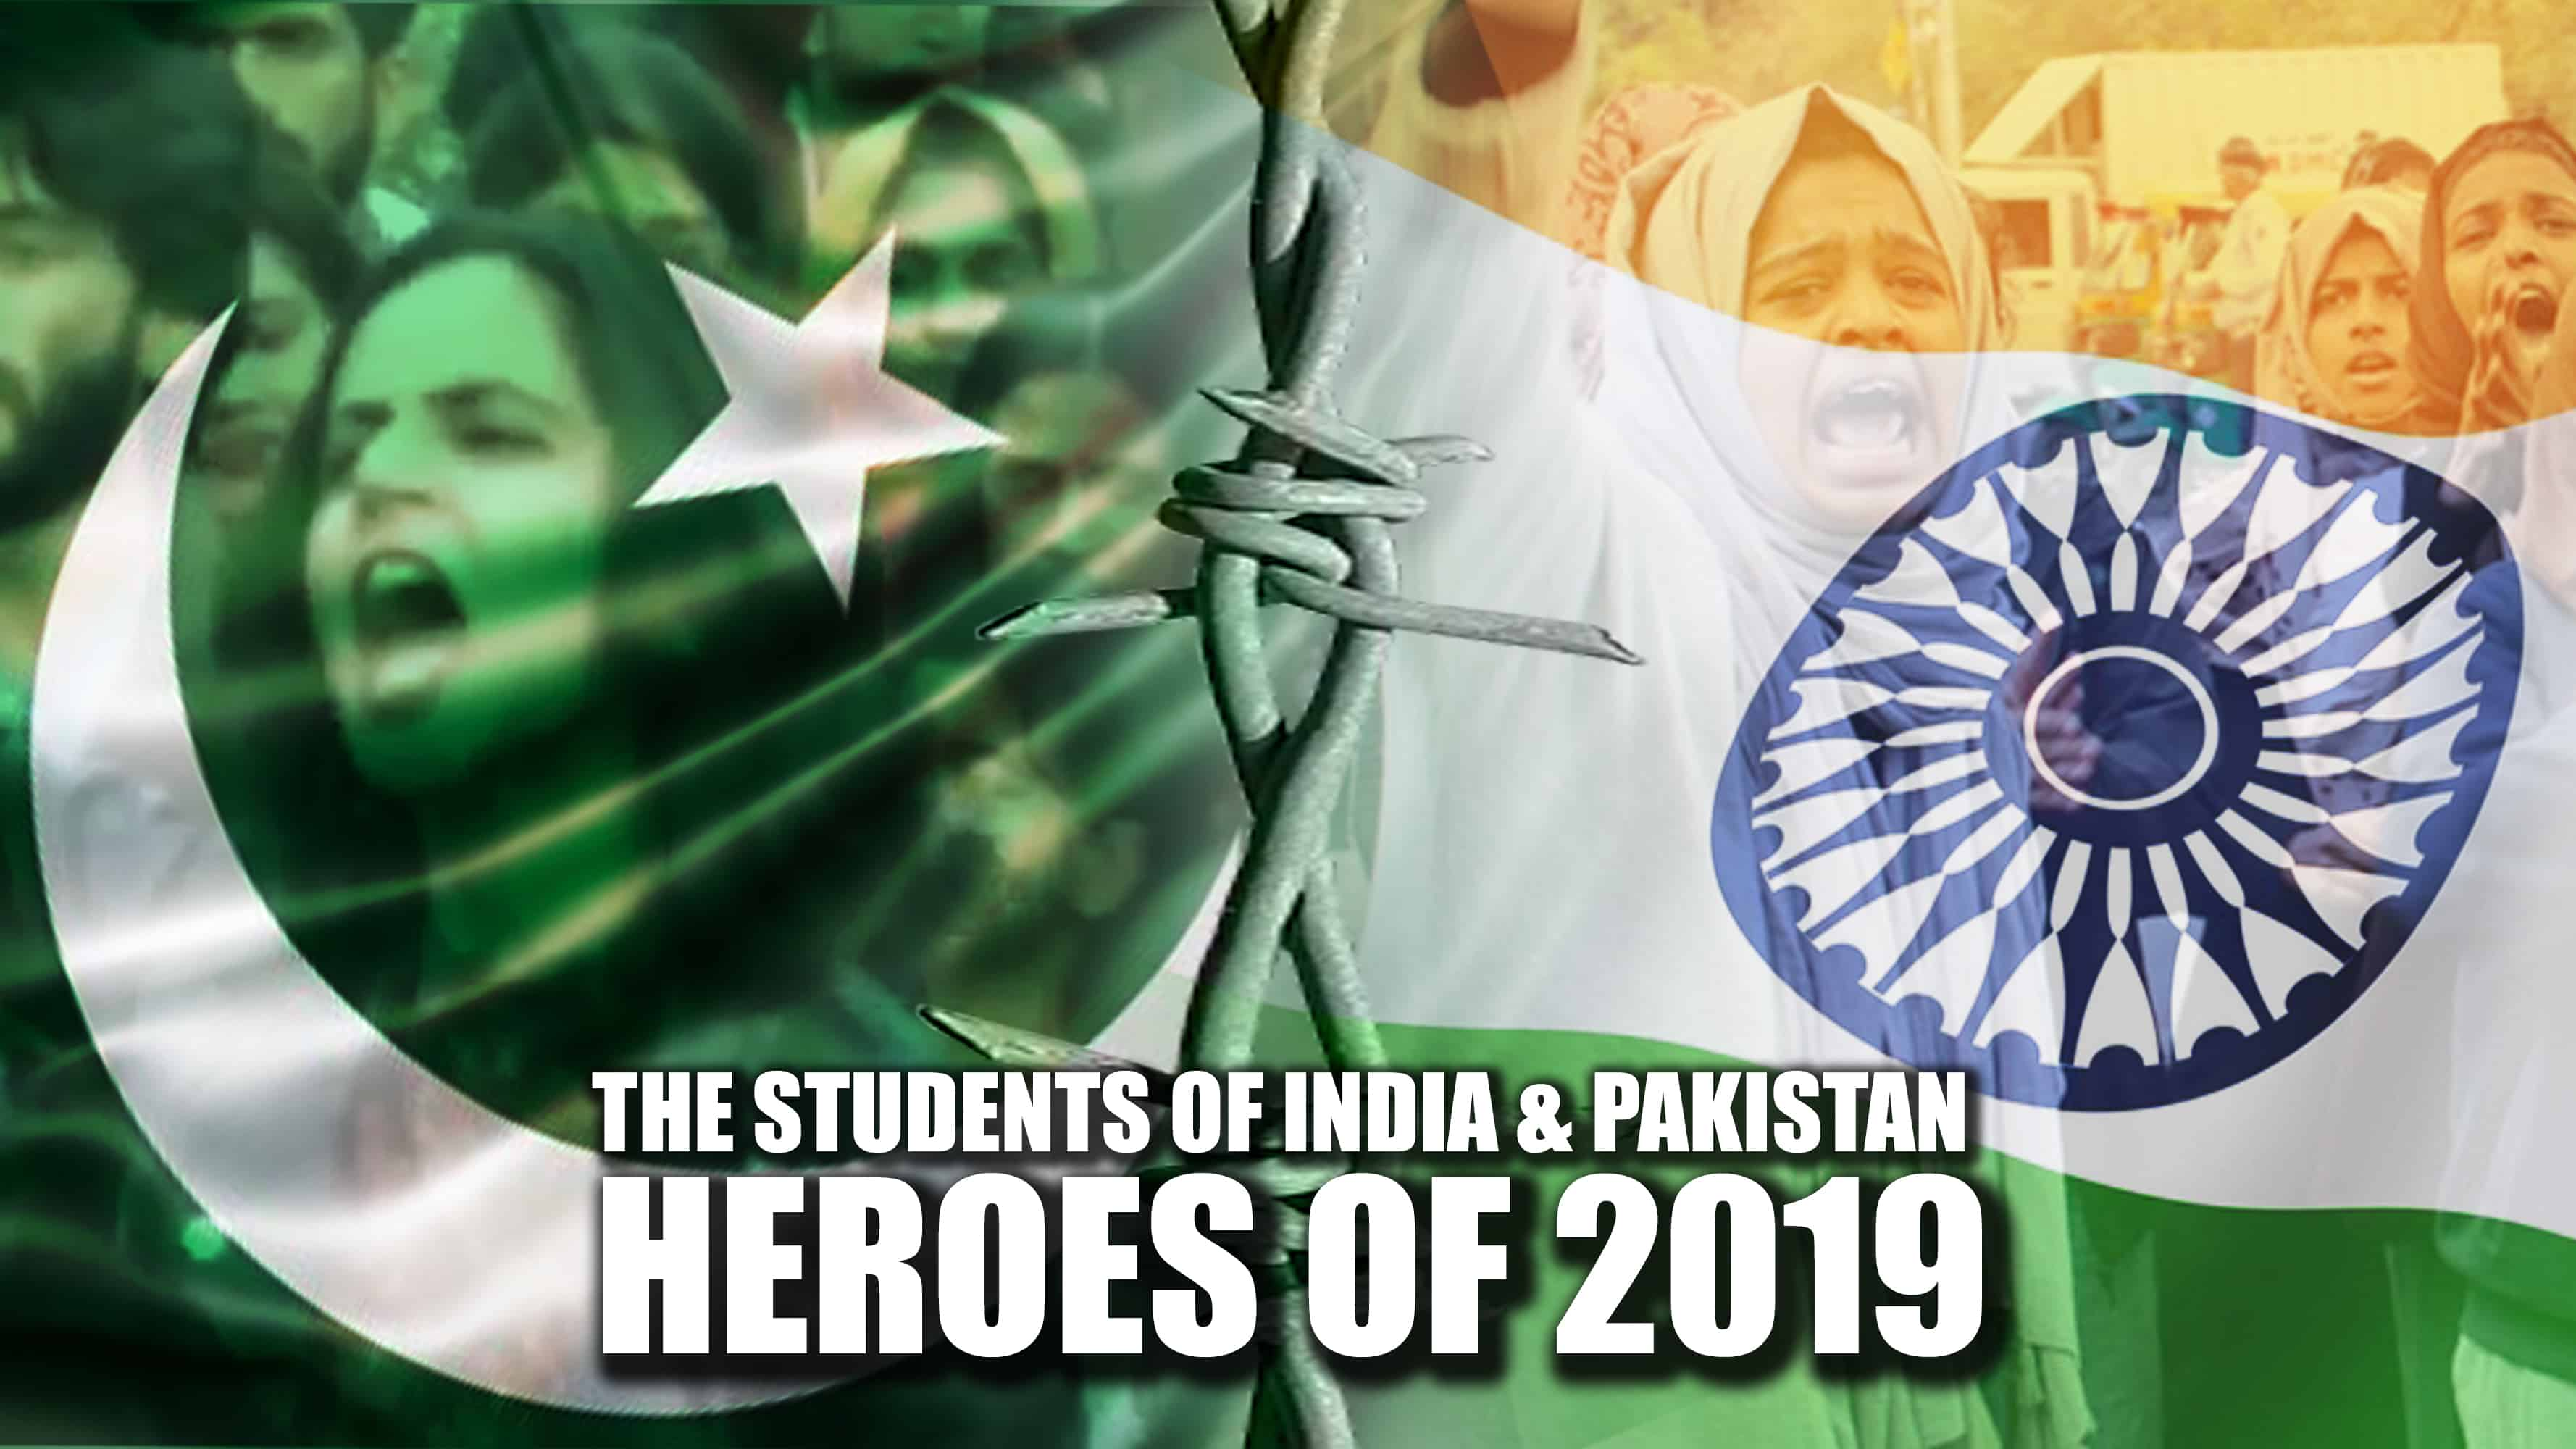 The Students of Pakistan and India: Heroes of 2019